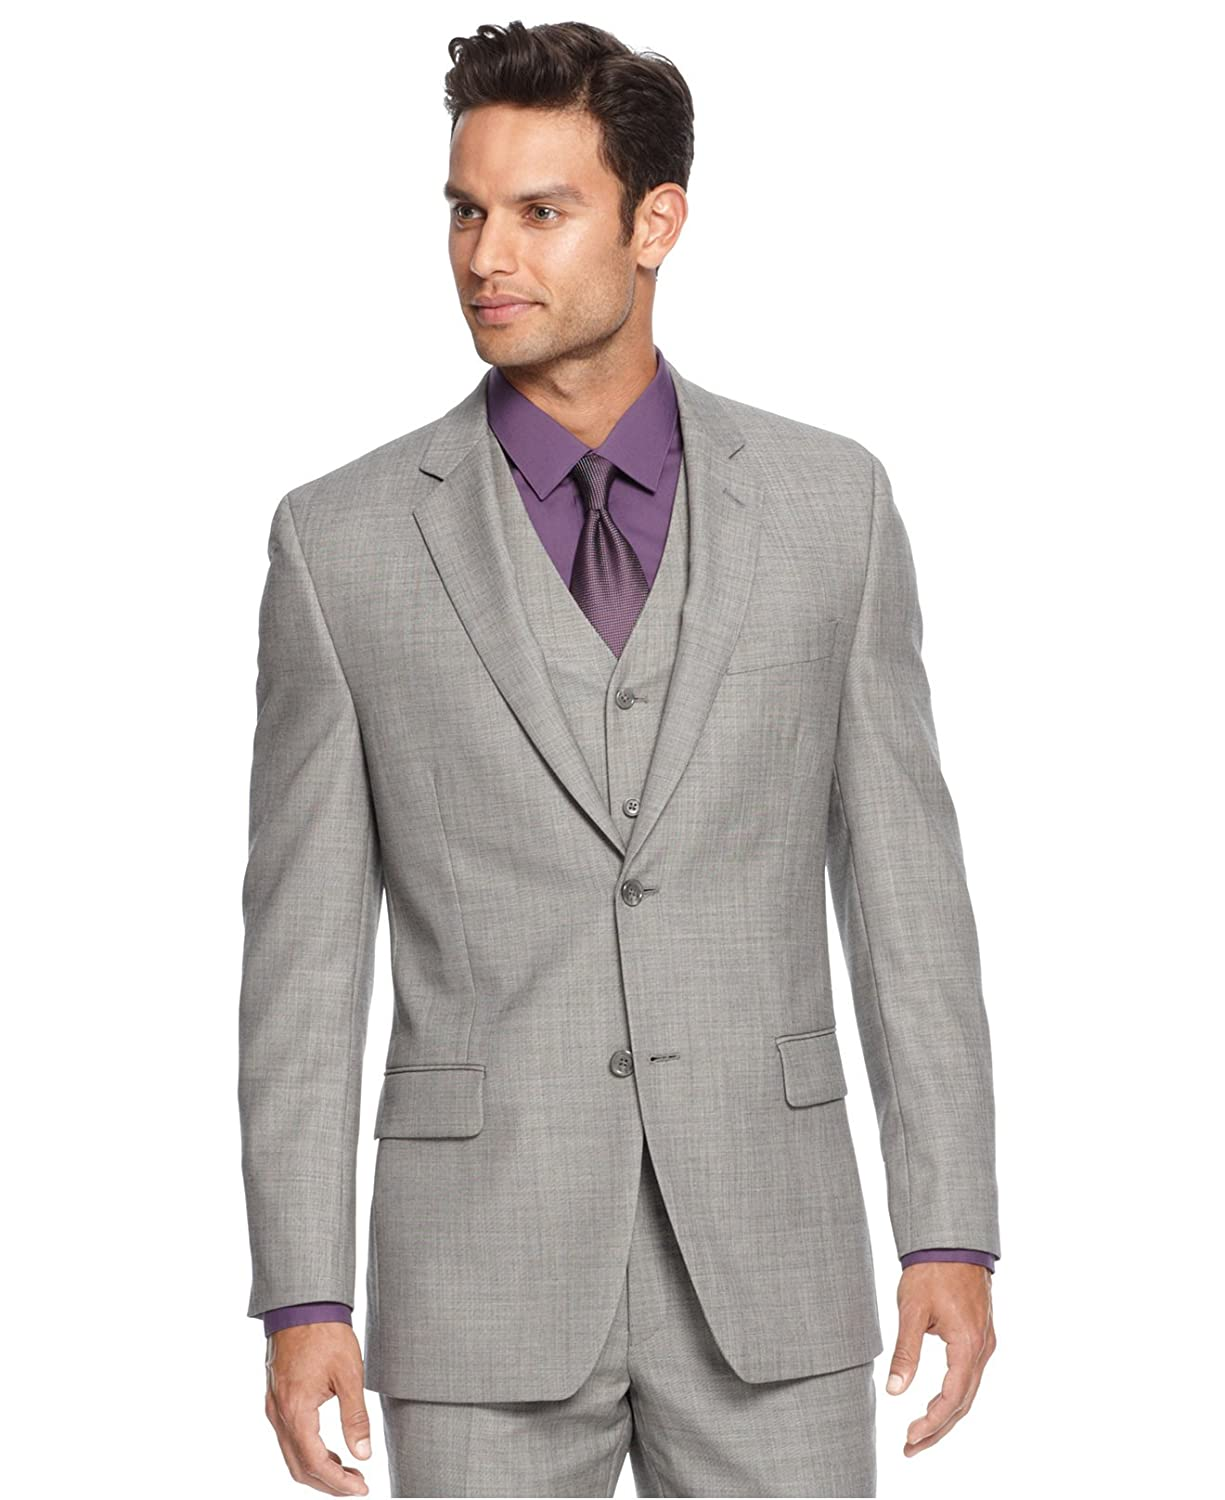 Alfani RED Slim Fit Light Gray Stepweave Two Button Wool Jacket (36R)